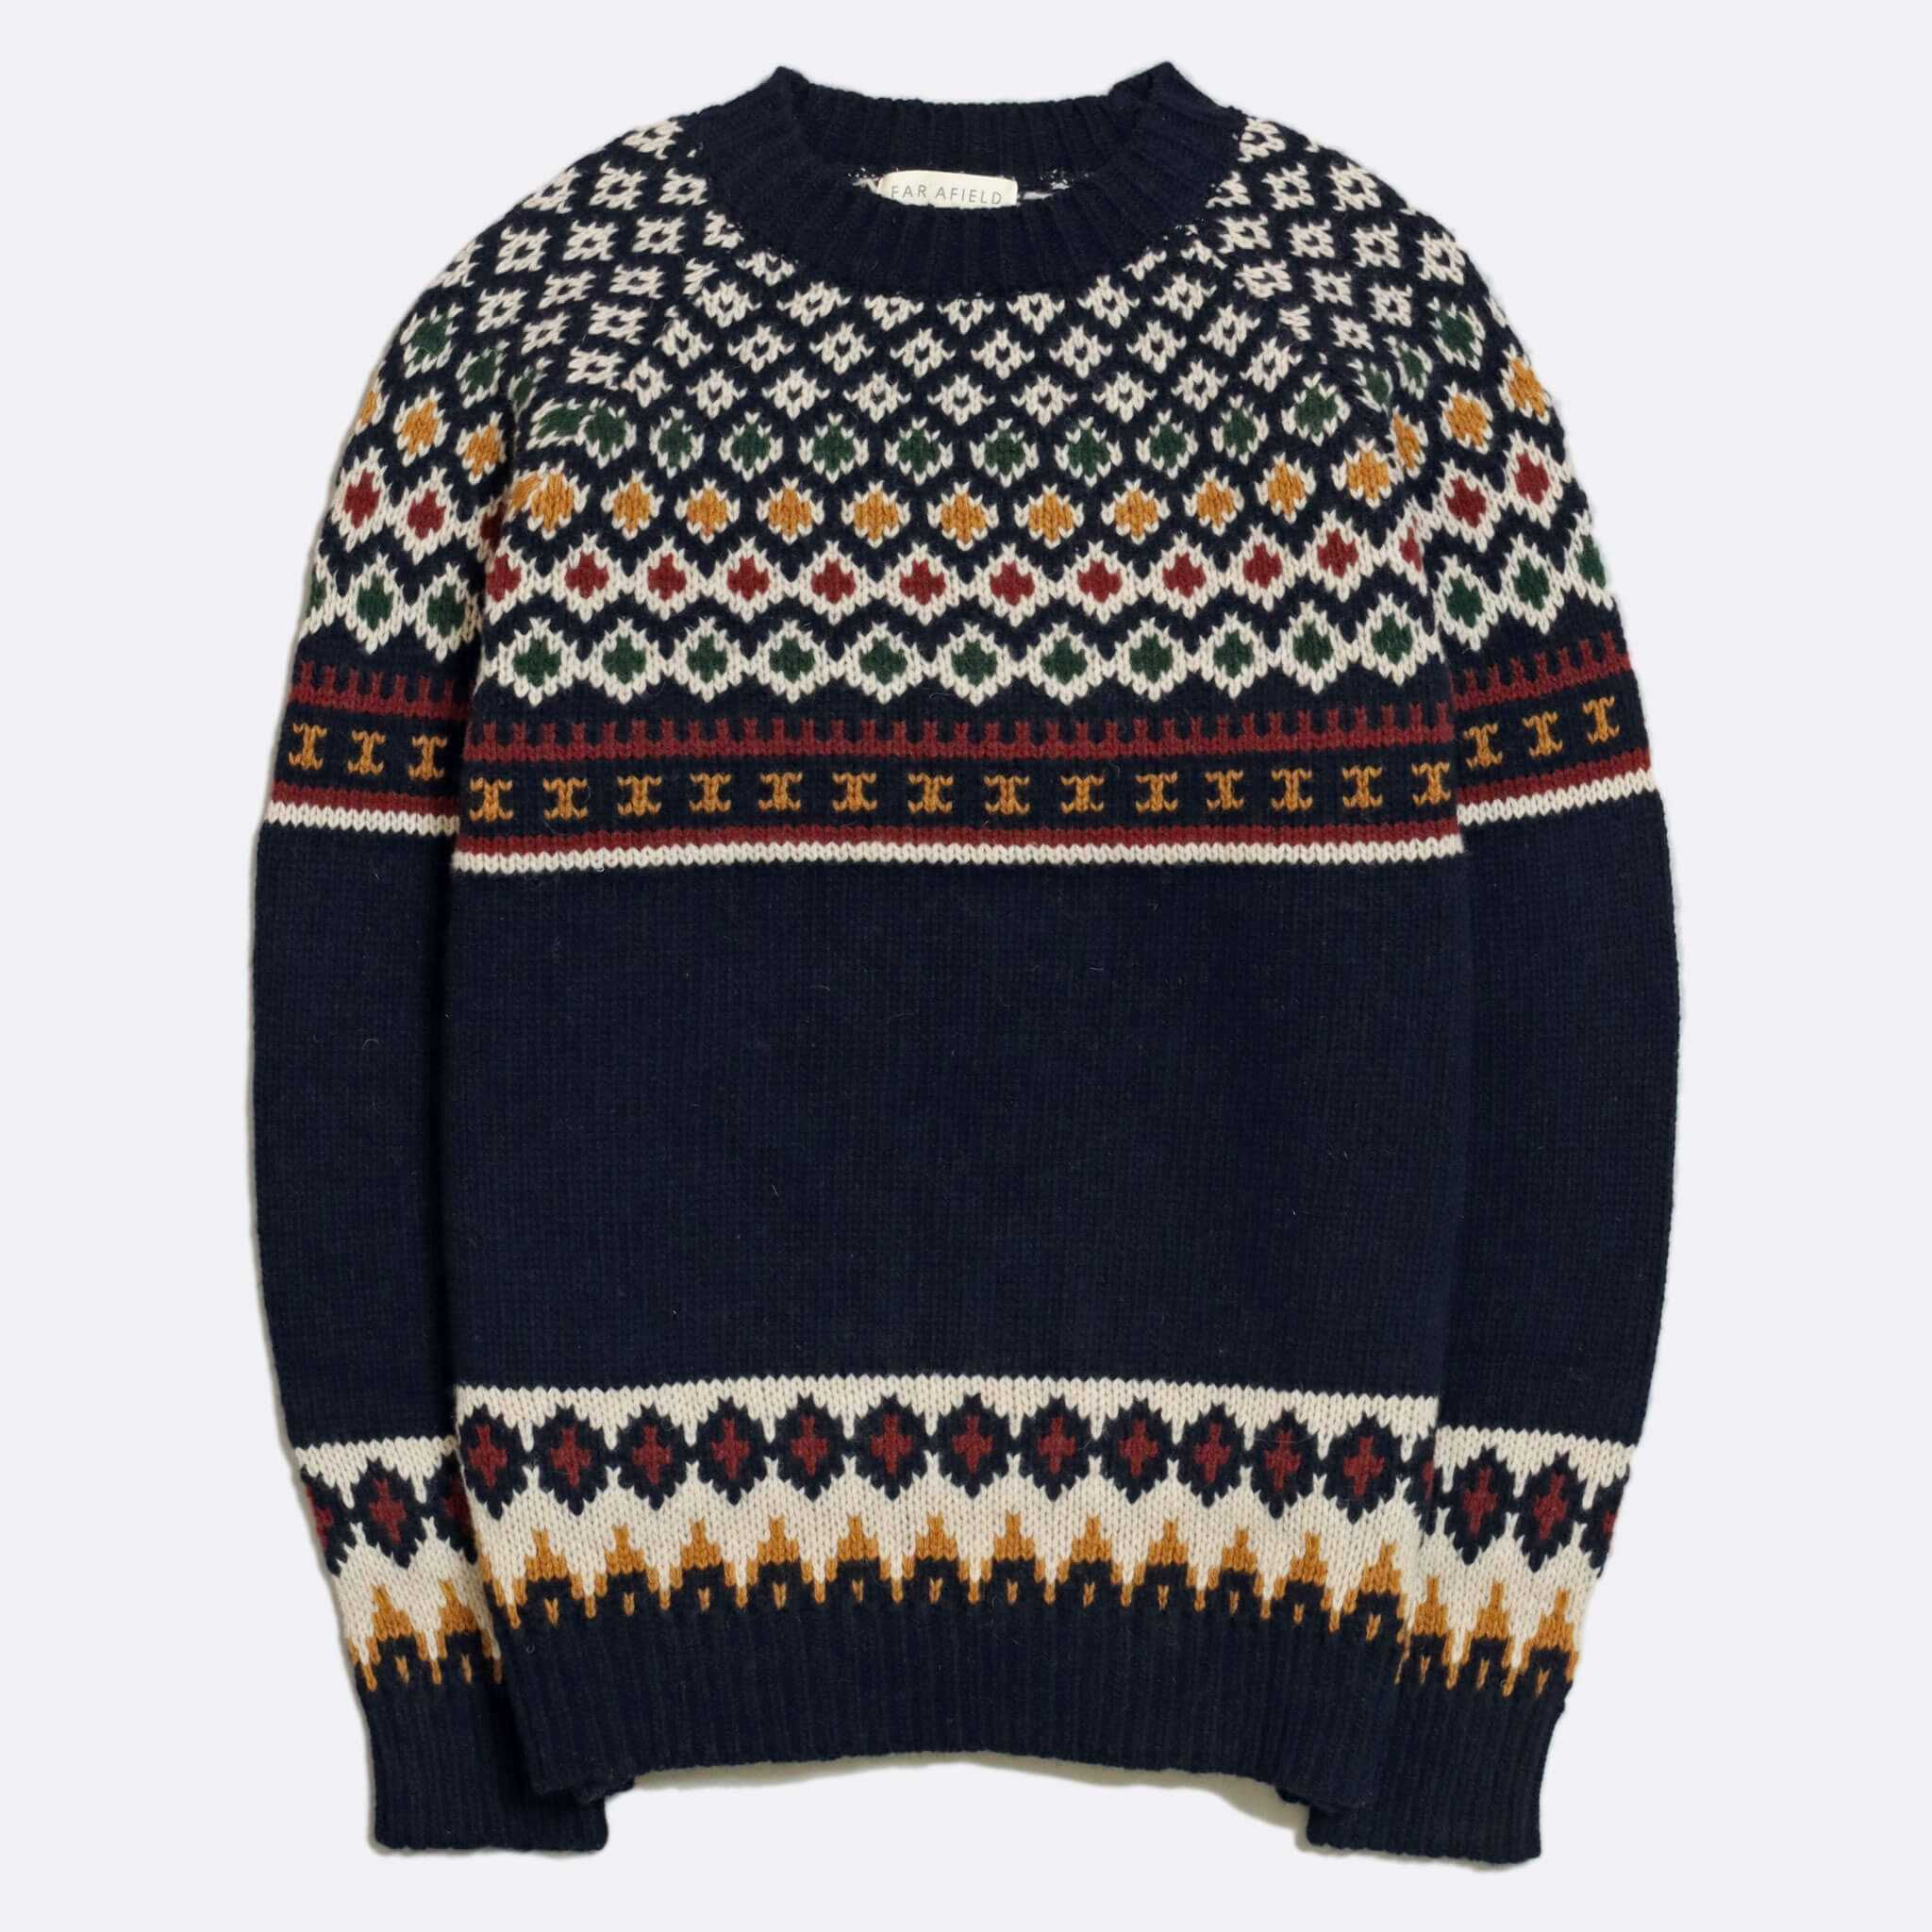 JERSEY FAR AFIELD WOOL MAURICE KNIT NAVY